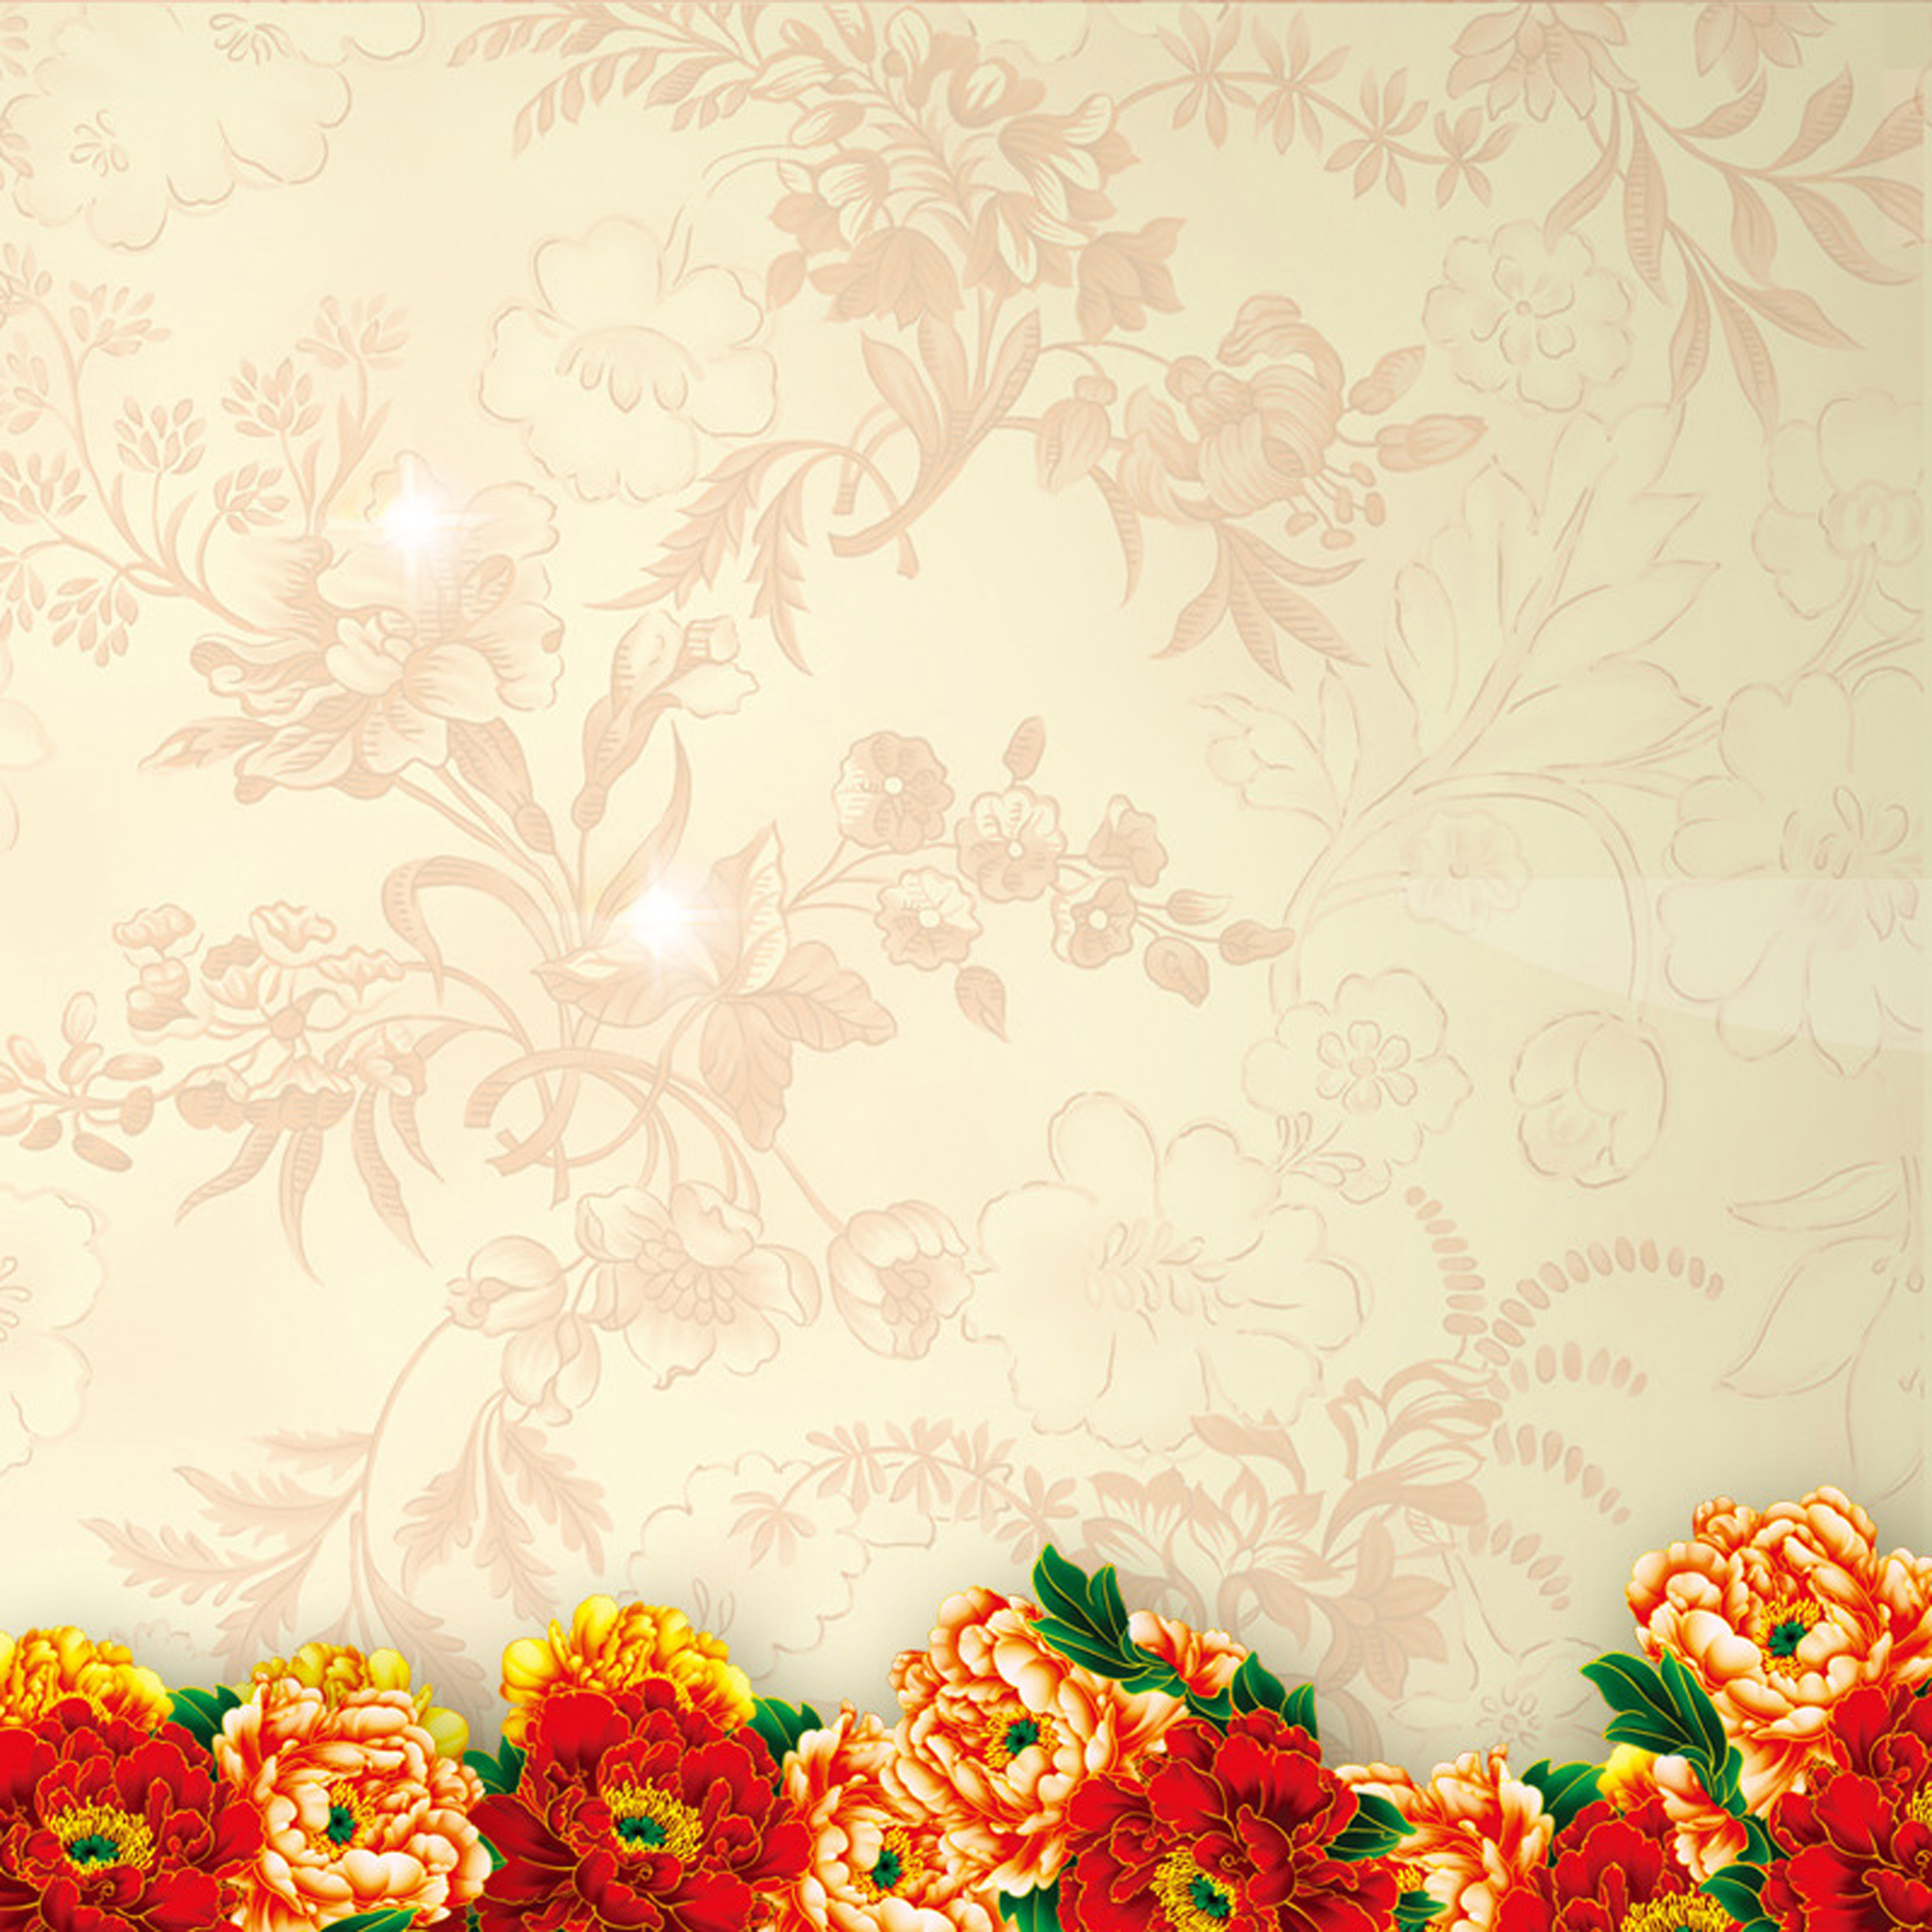 rich flowers simple background poster  color  shading  simple background image for free download